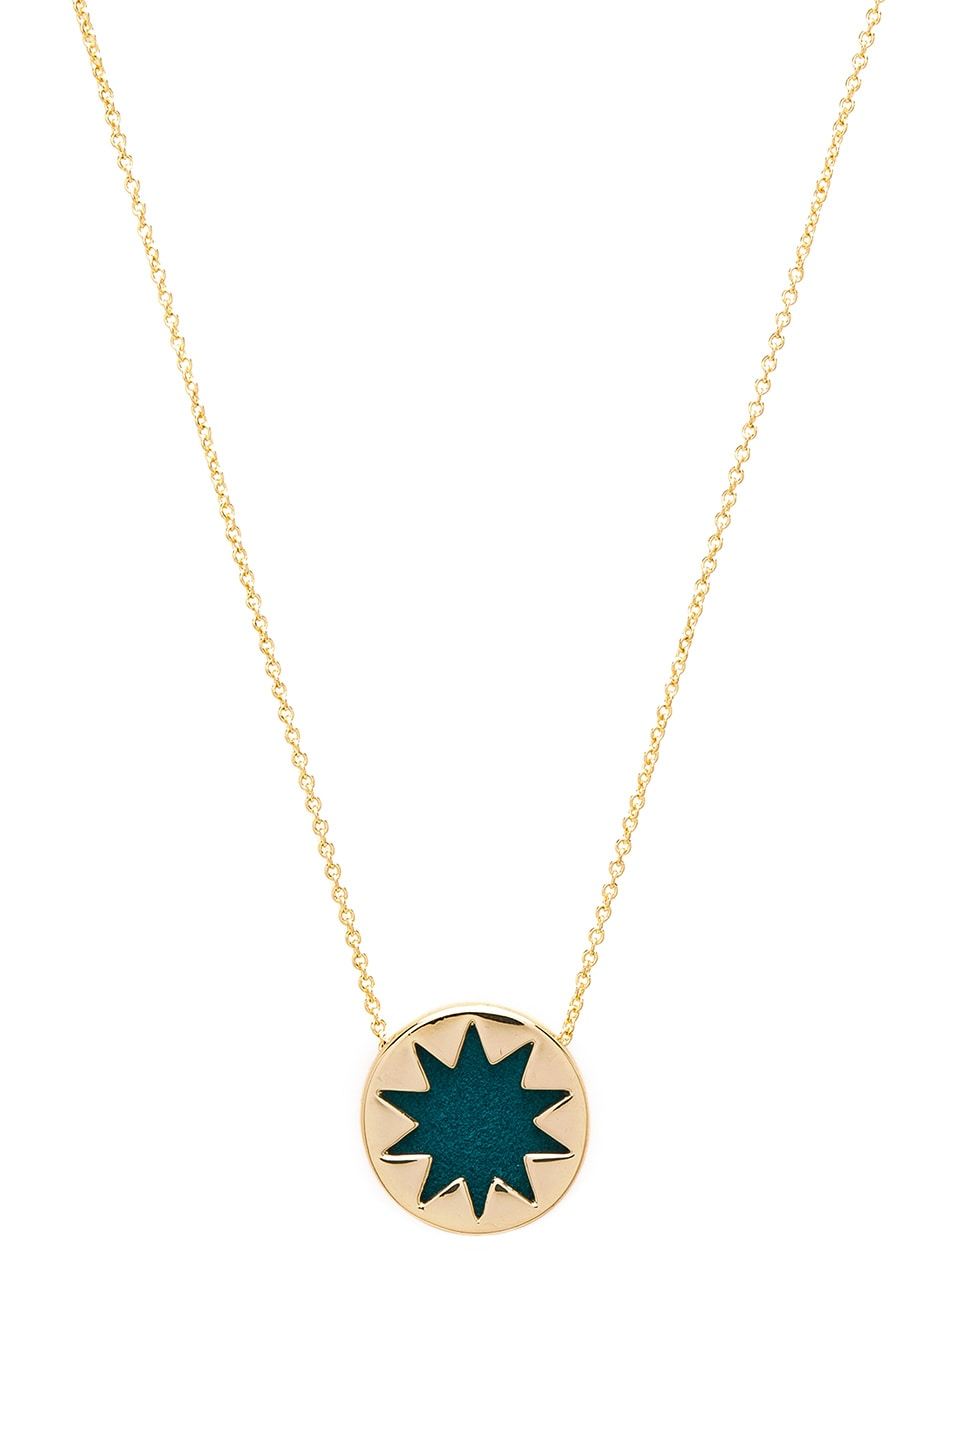 House of Harlow Mini Starburst Pendant Necklace by House of Harlow 1960